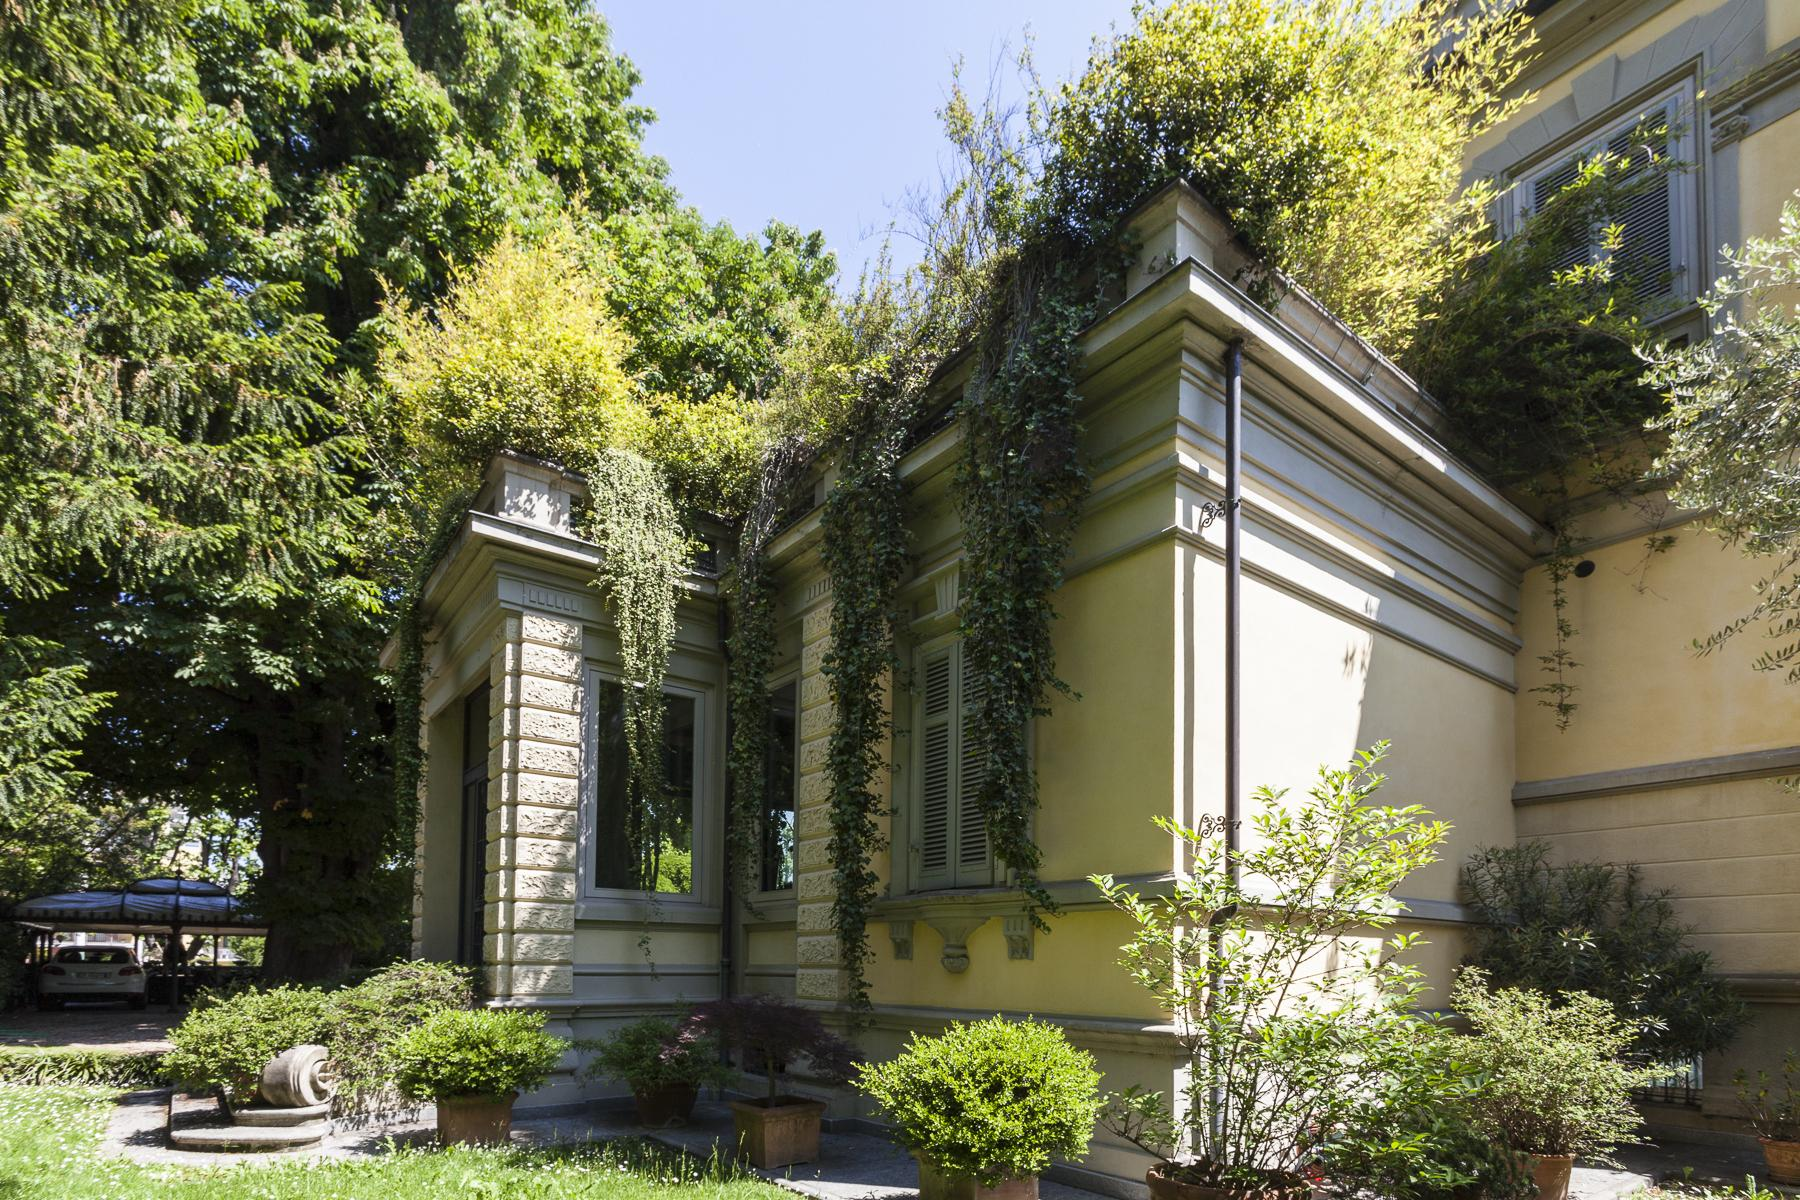 Elegant Art Nouveau villa with private park - 33